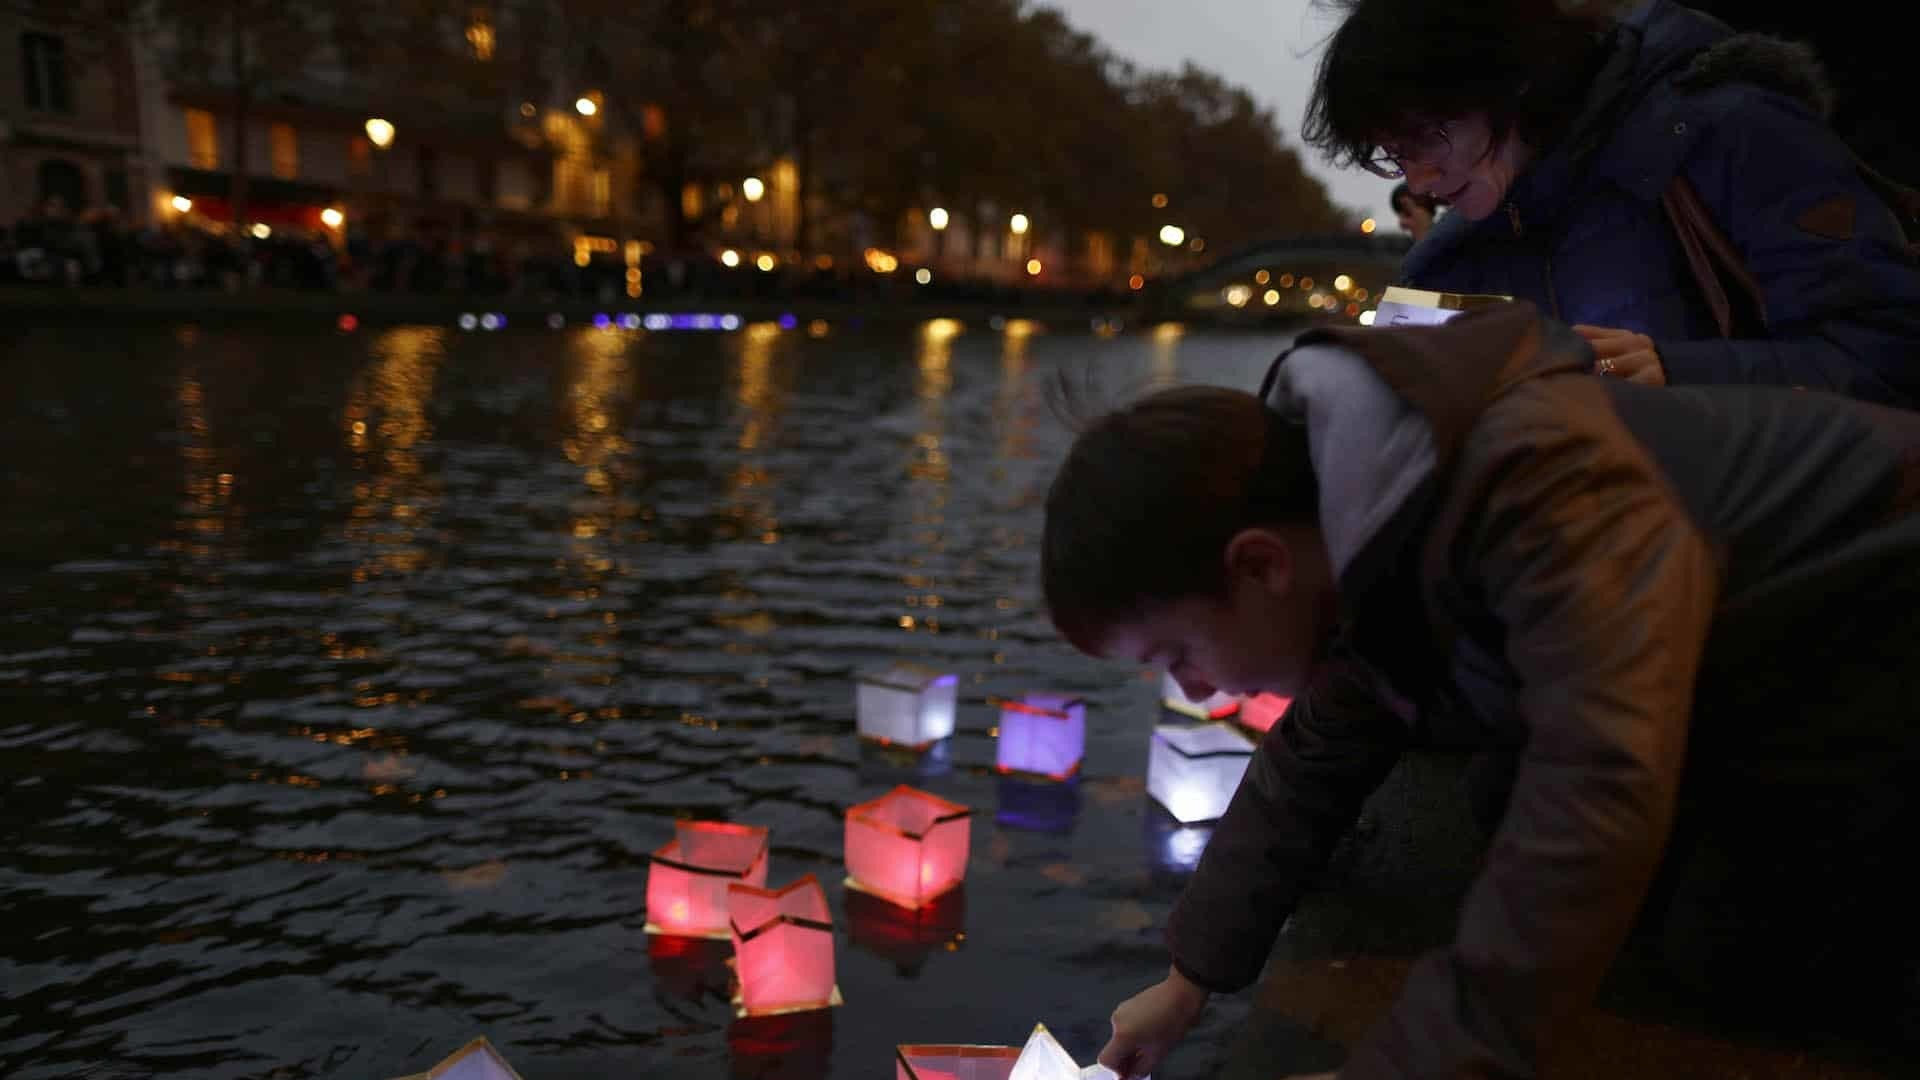 Paris pays tribute to those who lost their lives in terror attacks